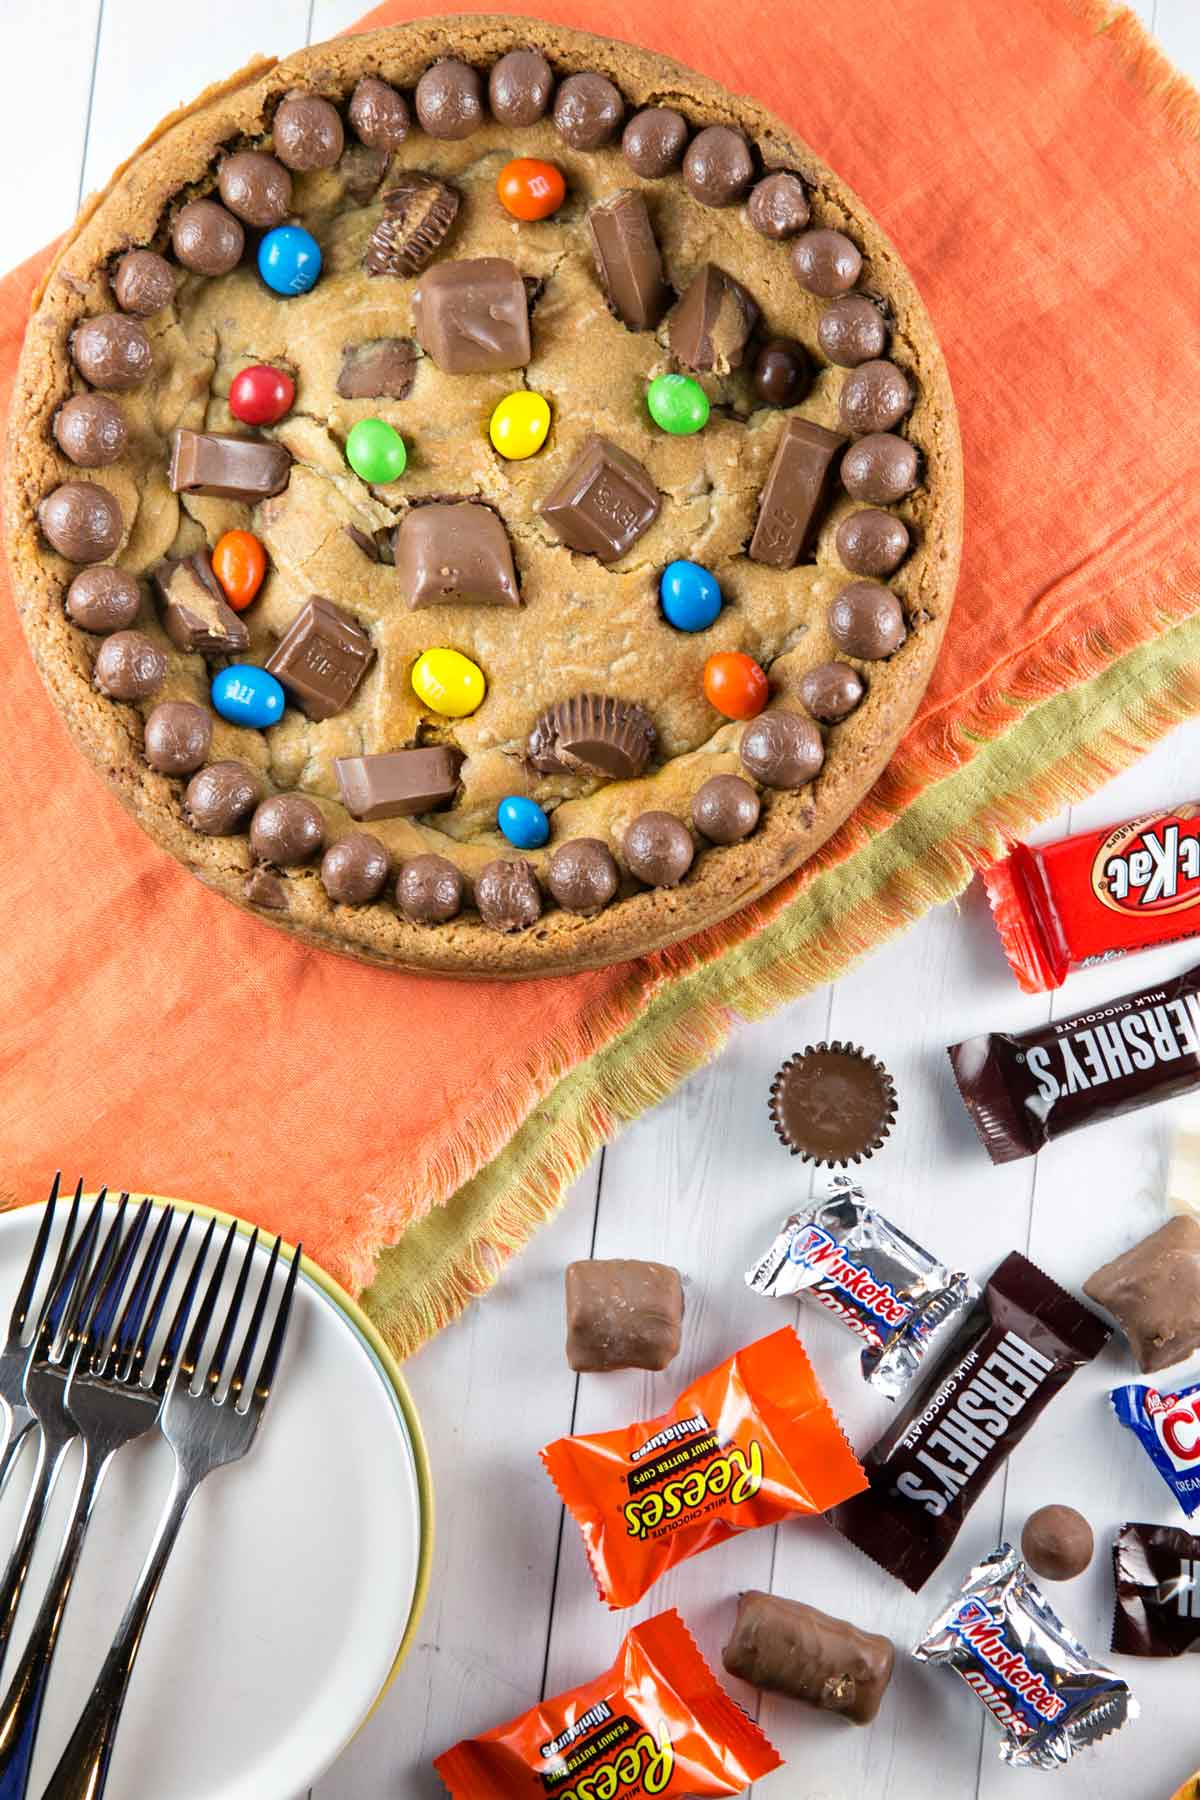 a cookie cake covered in candy on an orange placemat with candy wrappers scattered around